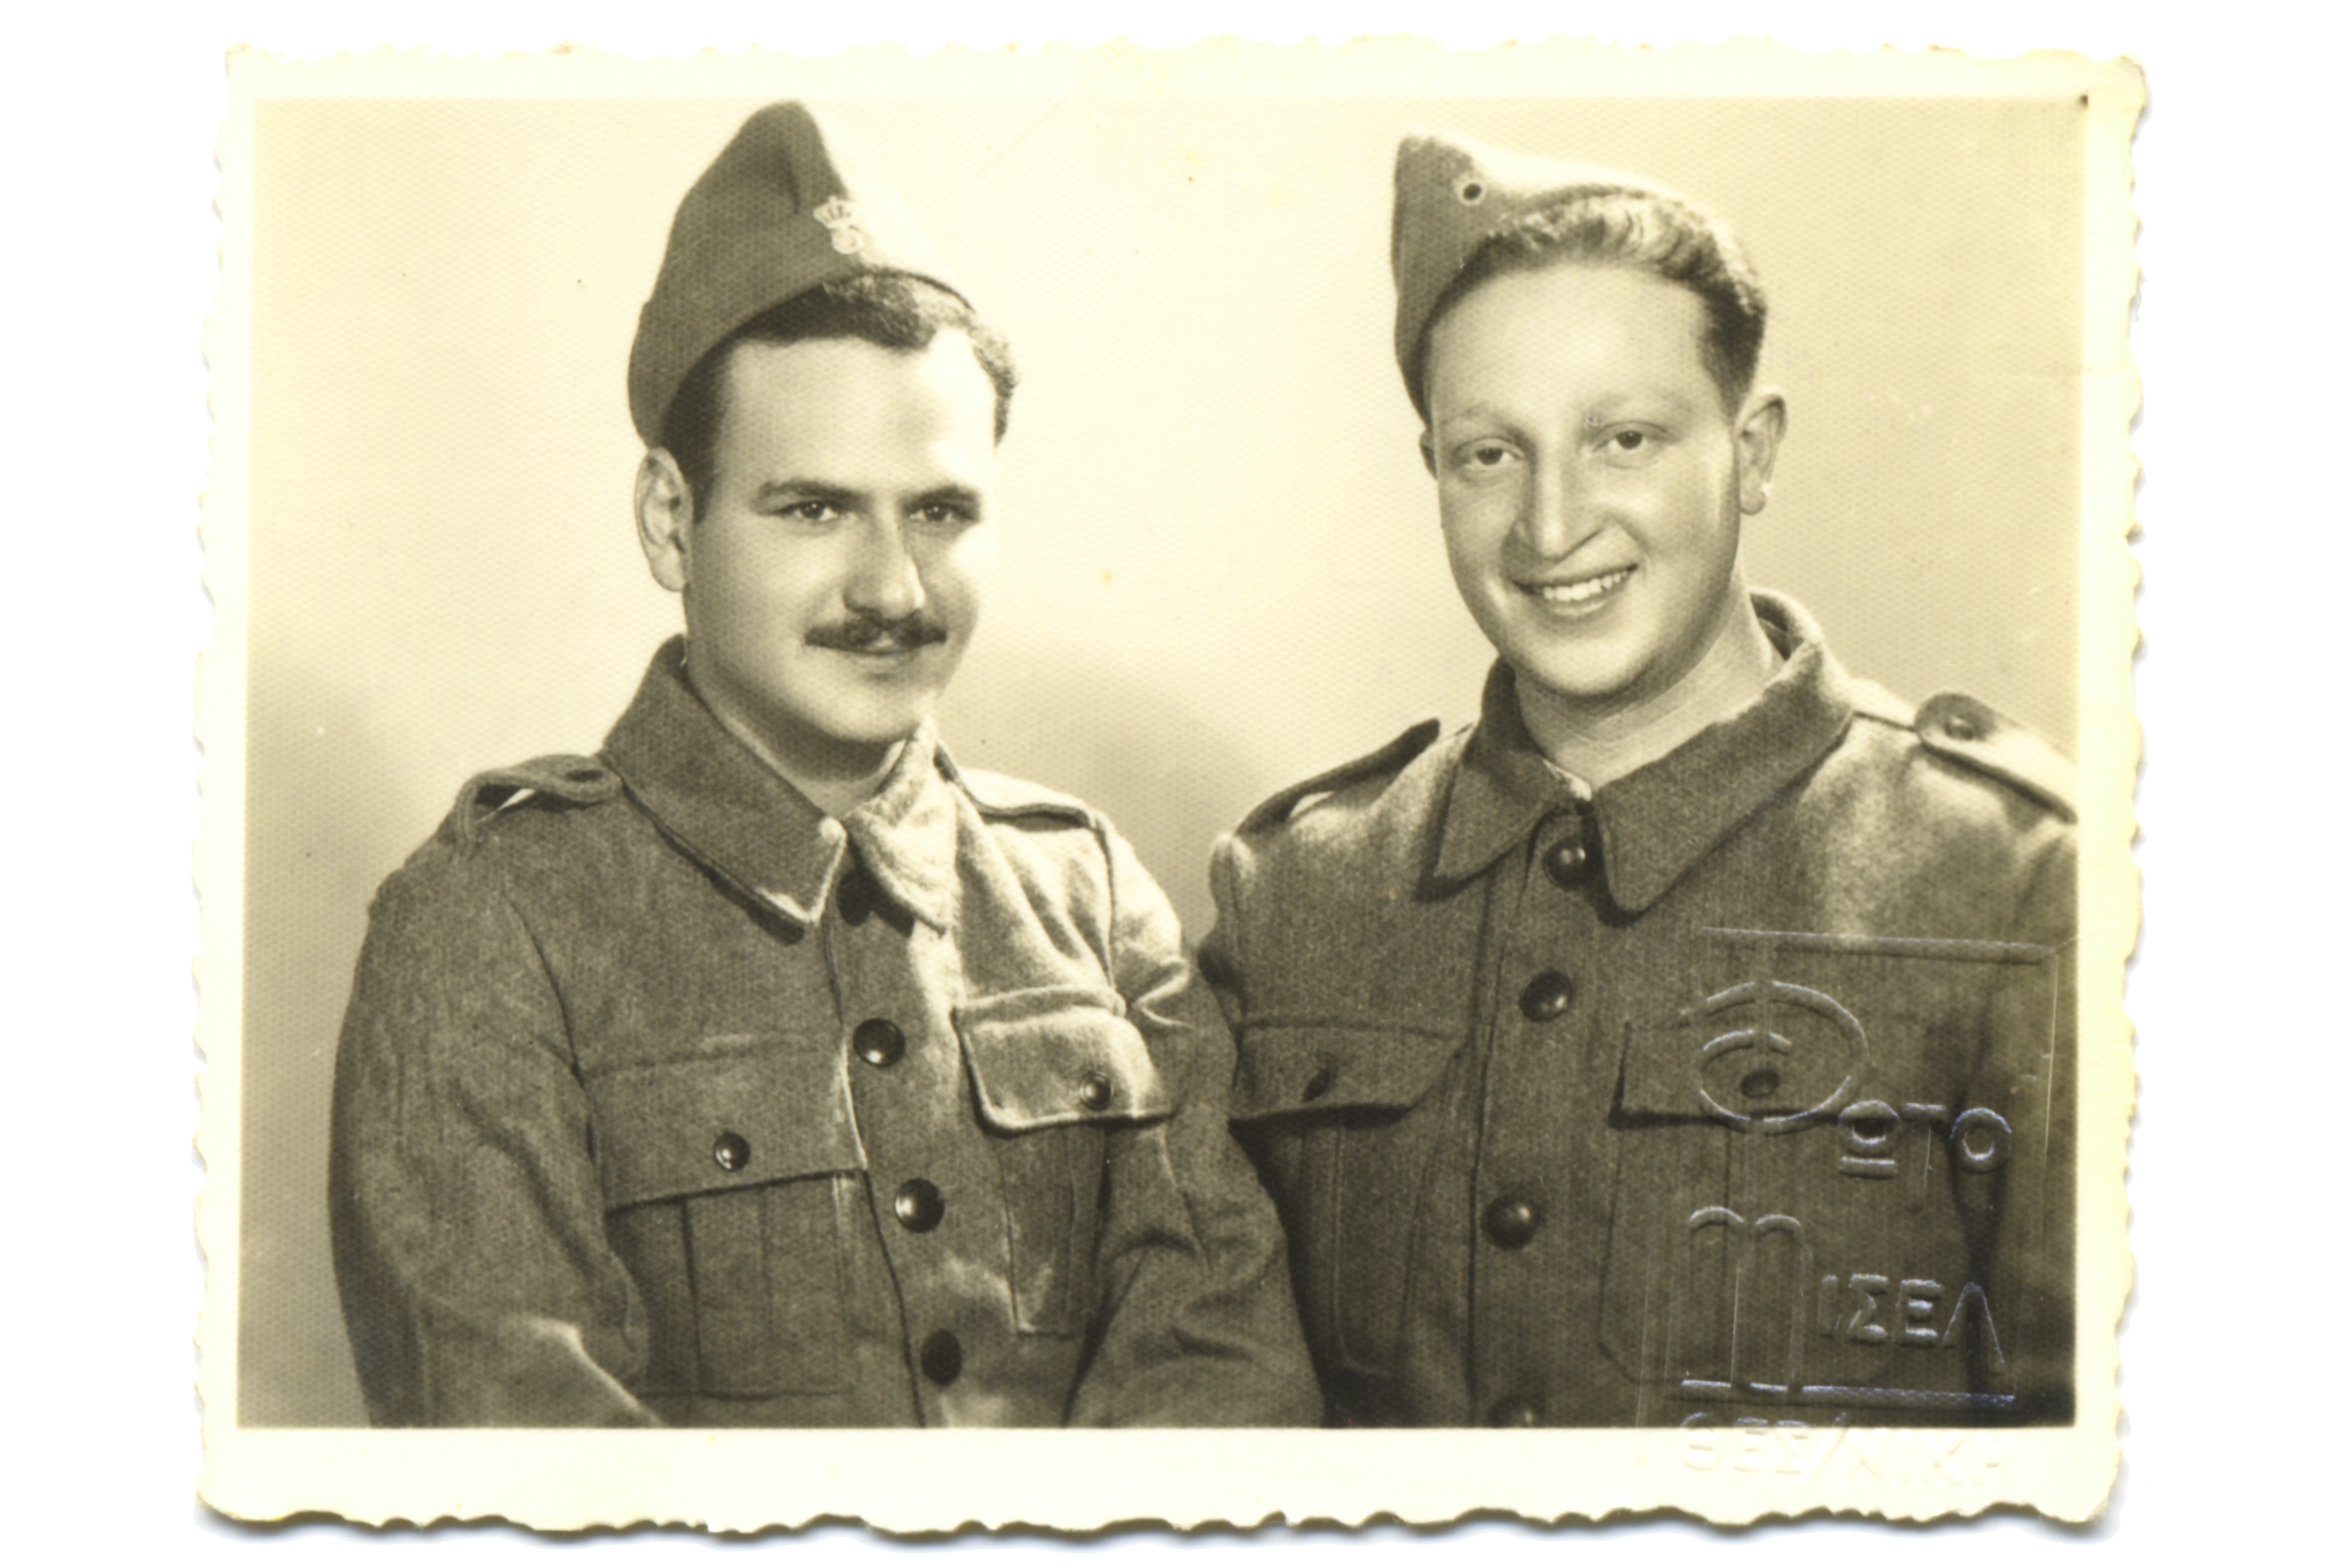 Solomon Molho and Nadir Haim in the Greek army